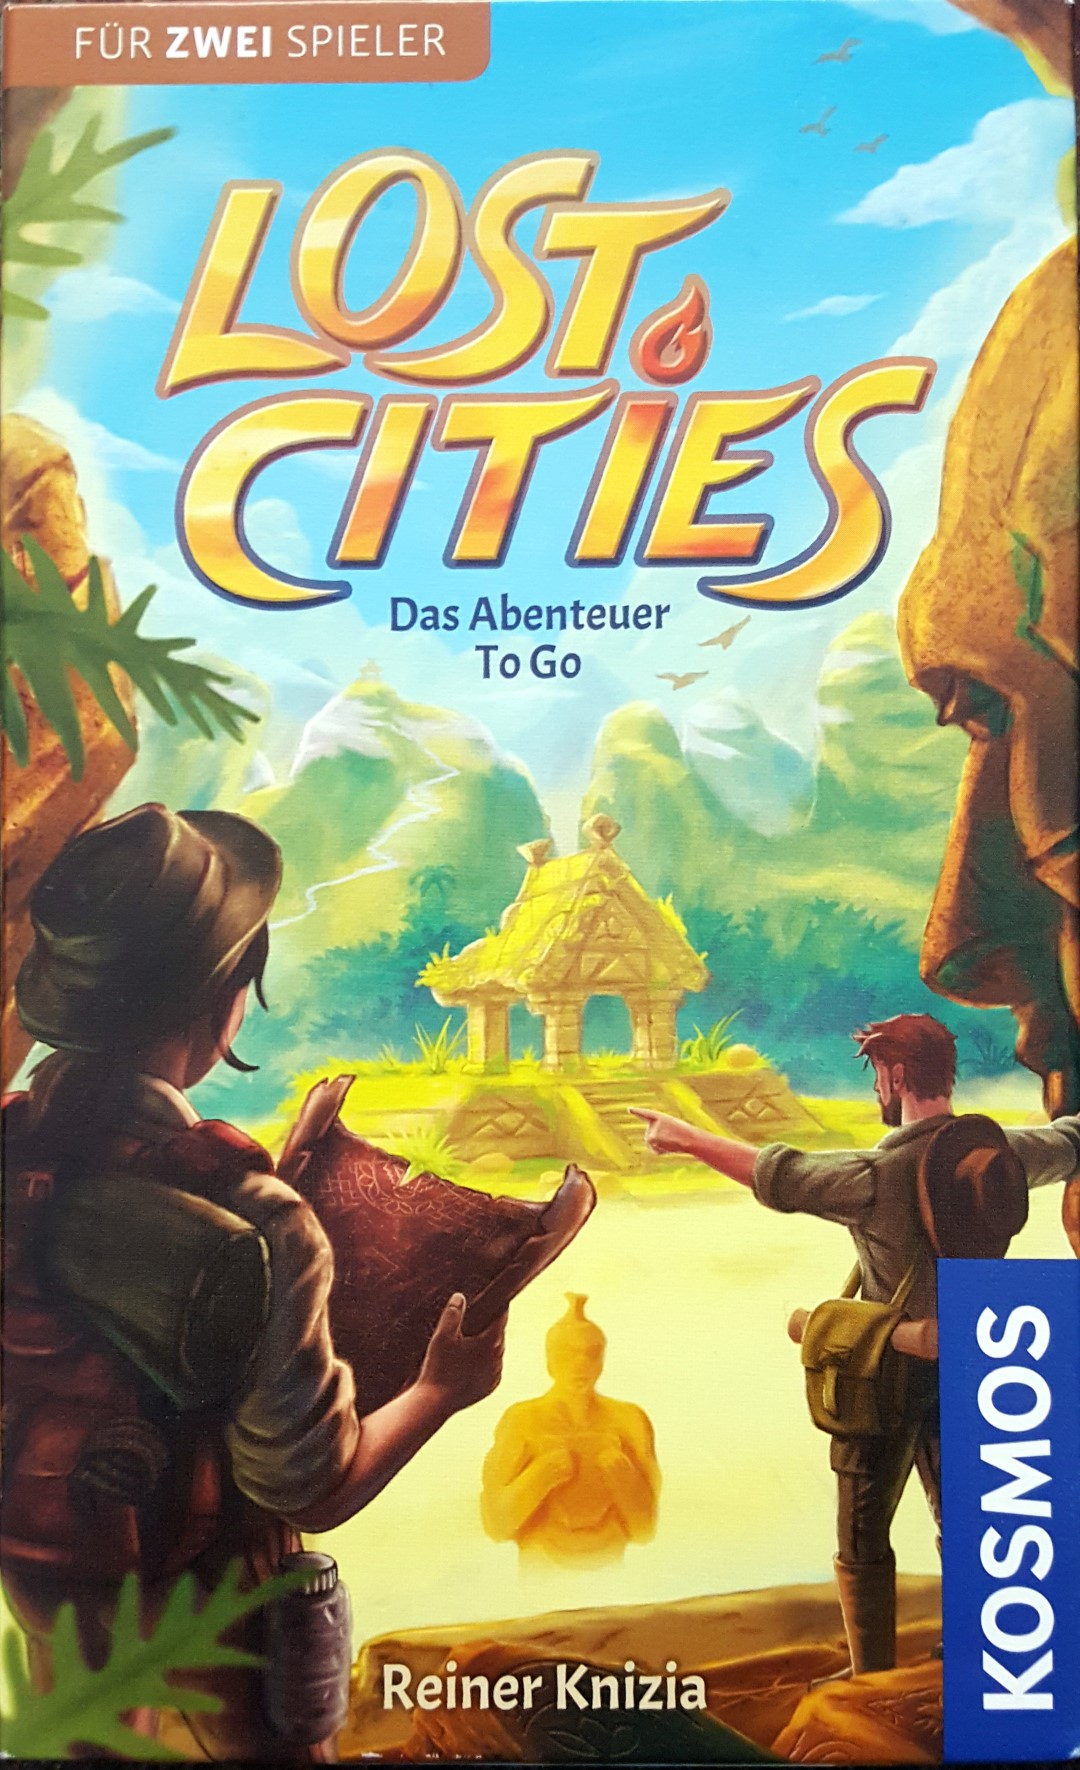 Lost Cities: To Go (Rezension)